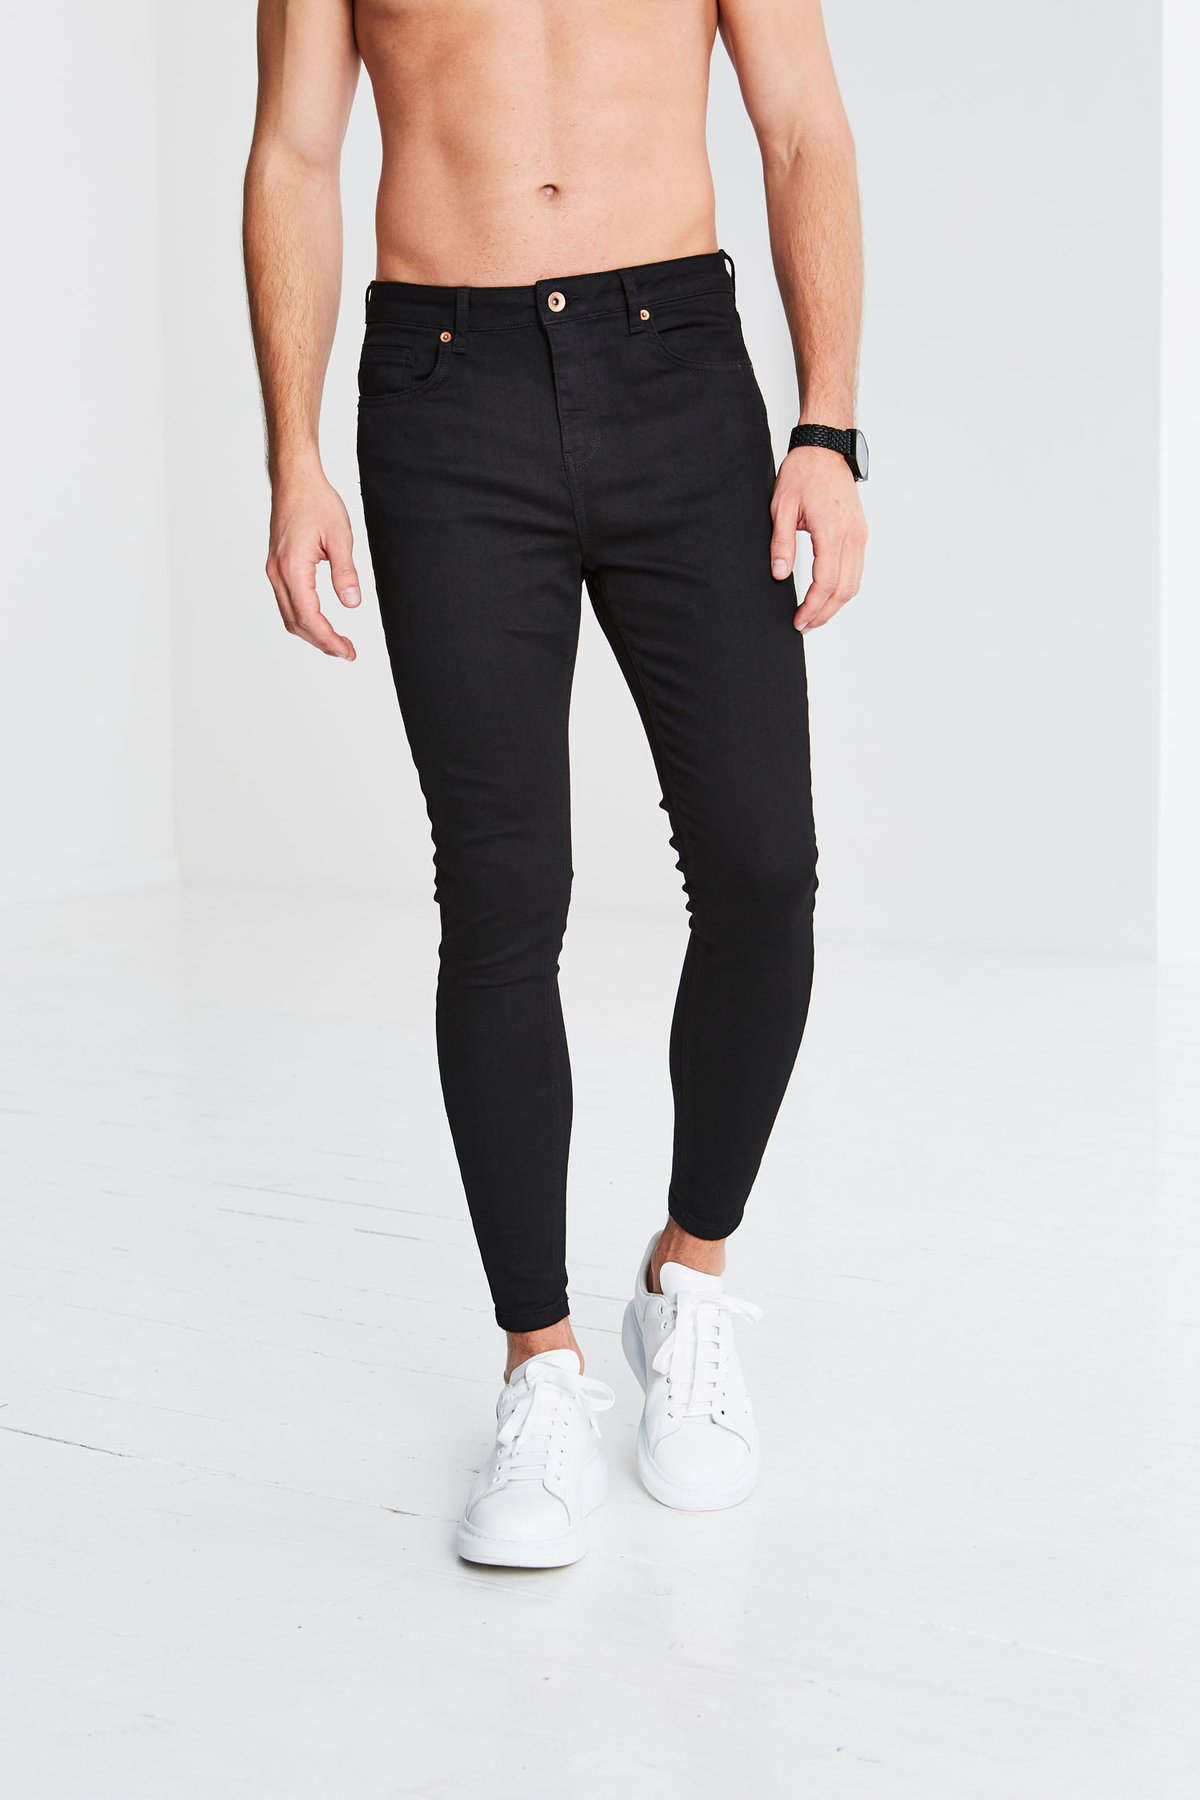 Pré London – Non Ripped – Black